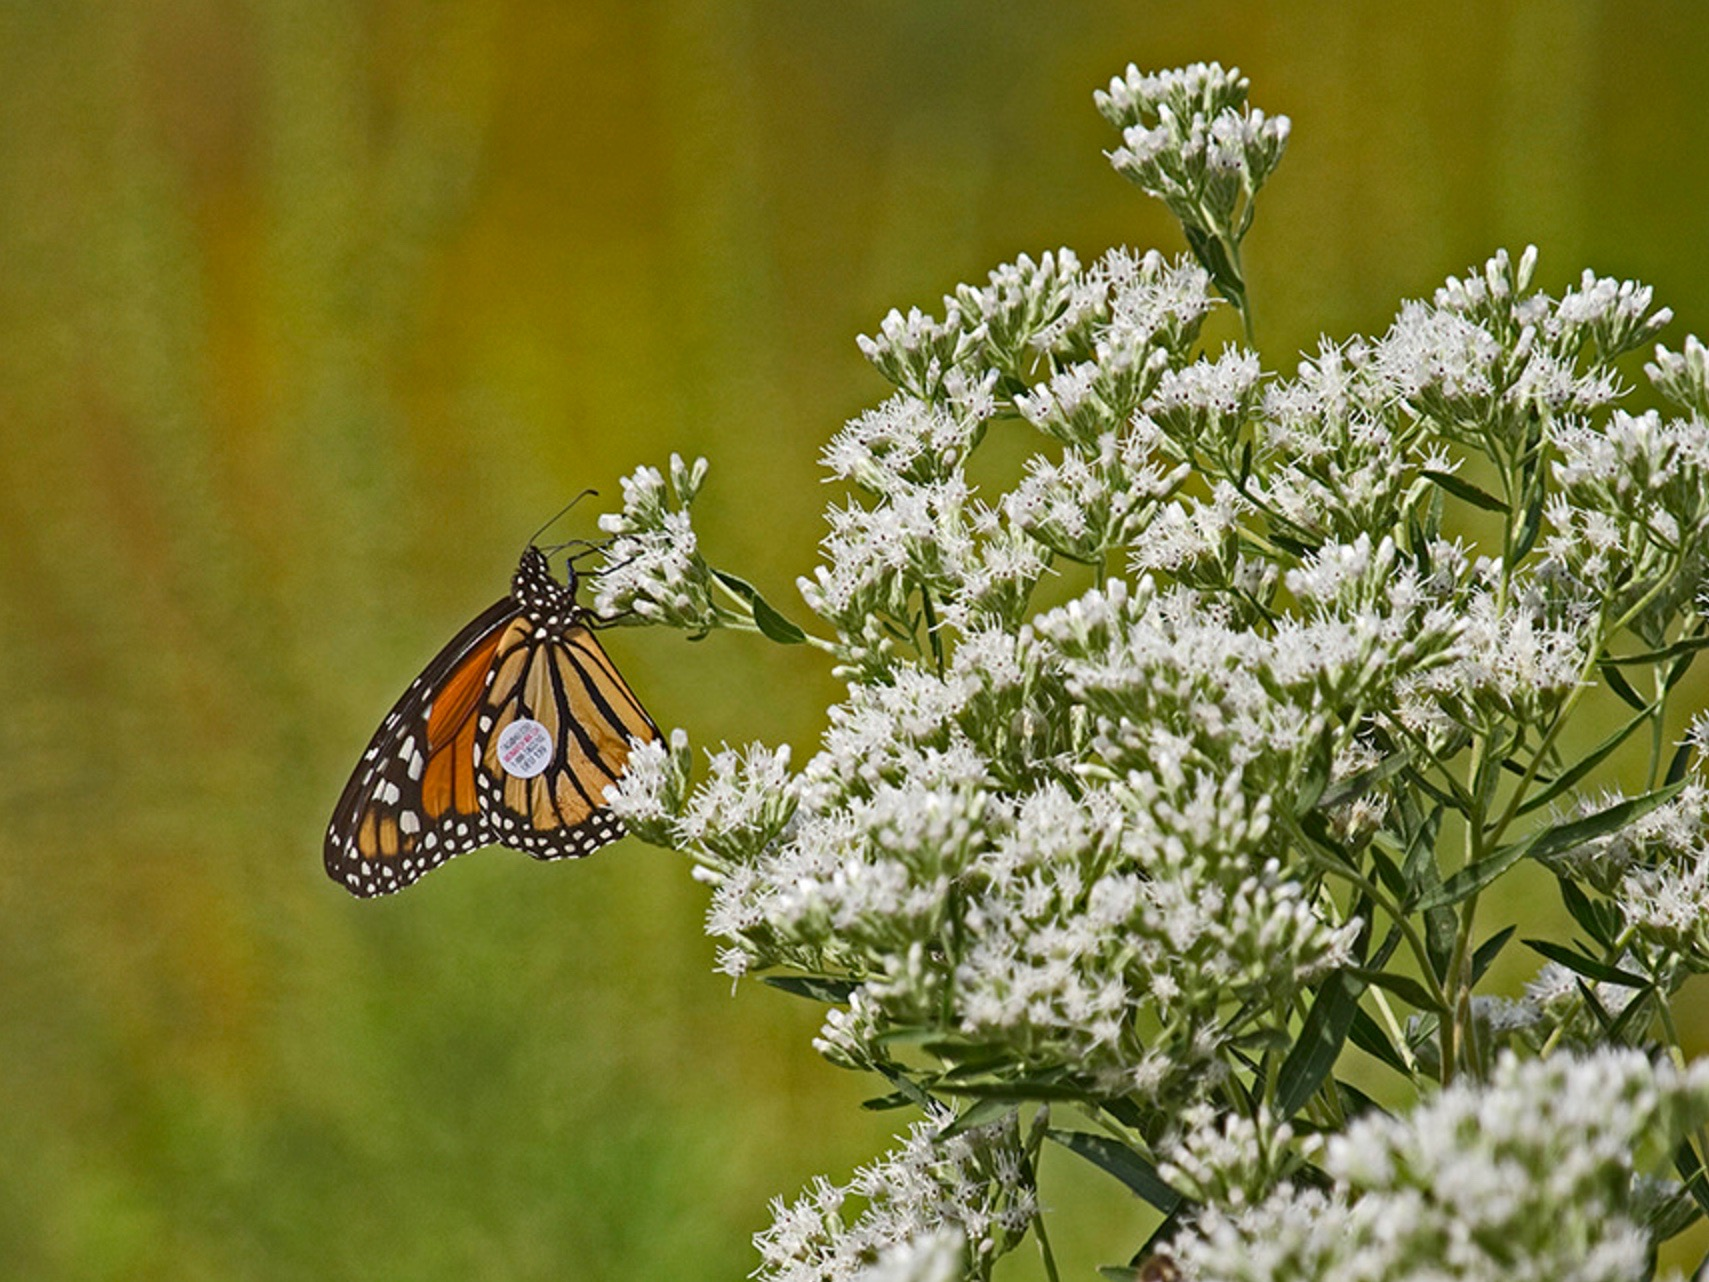 A tagged monarch butterfly in Illinois. (U.S. Fish and Wildlife Service)